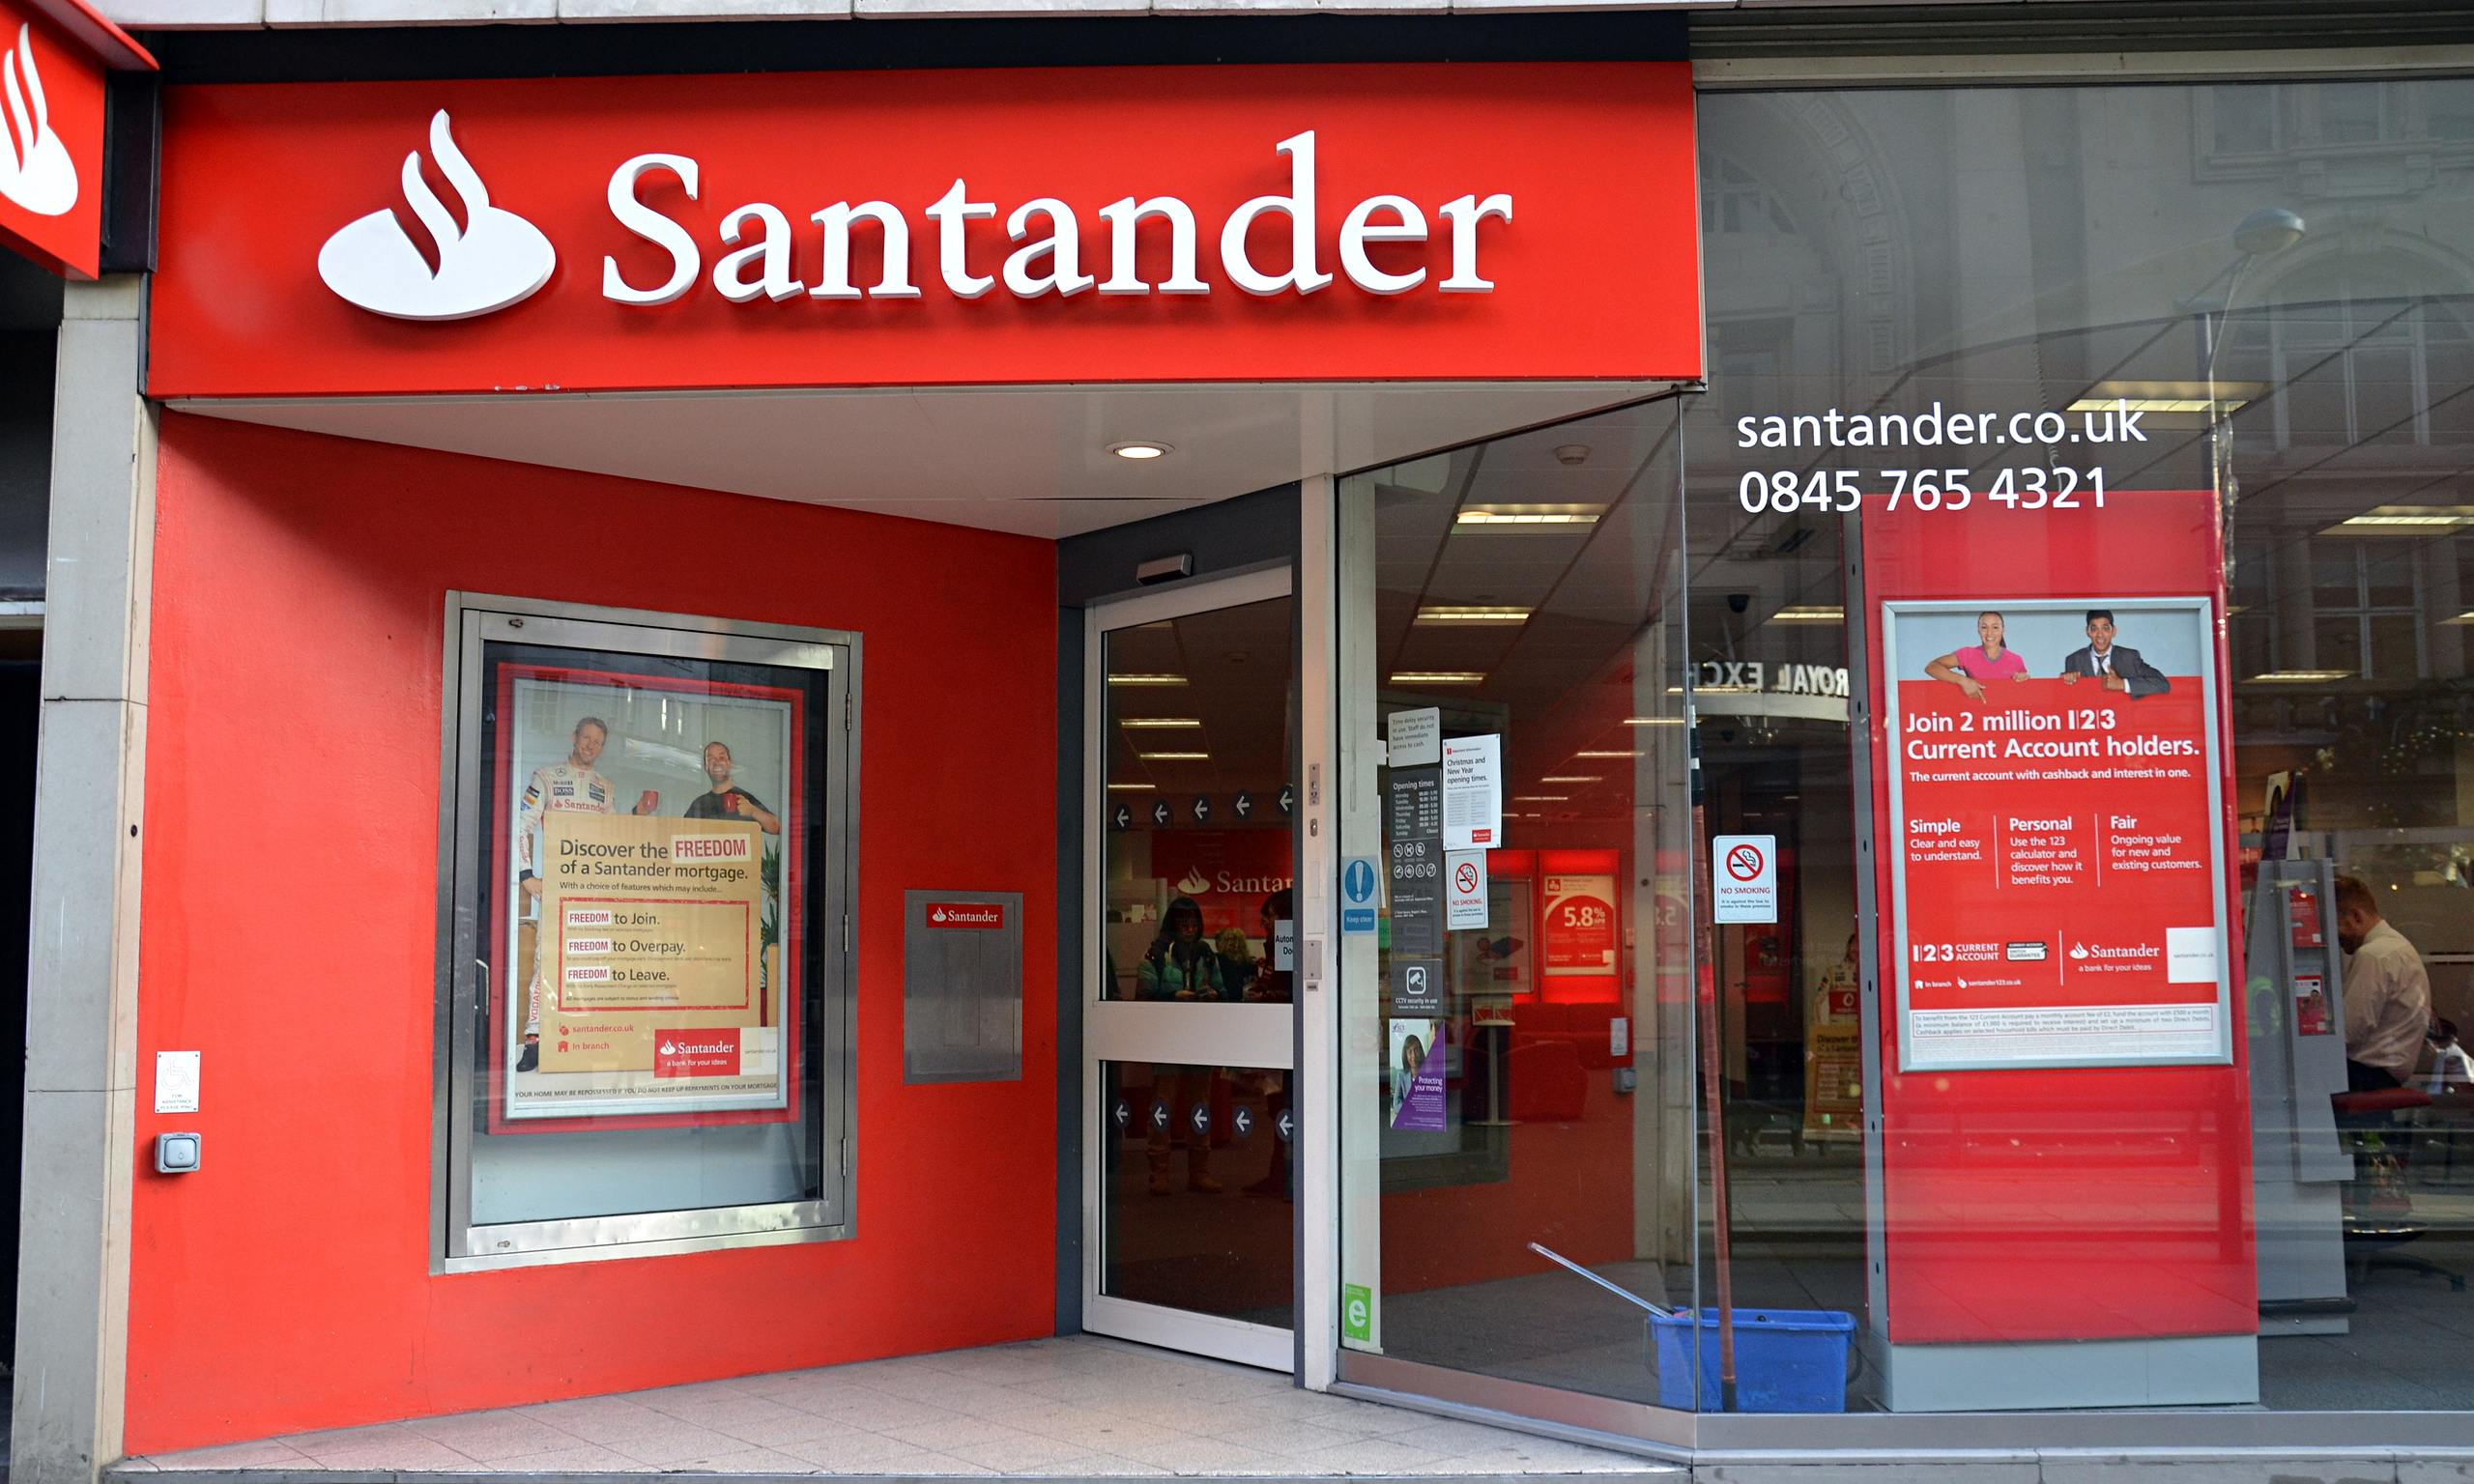 Santander fined £12.5m over poor investment advice | Money | The Guardian